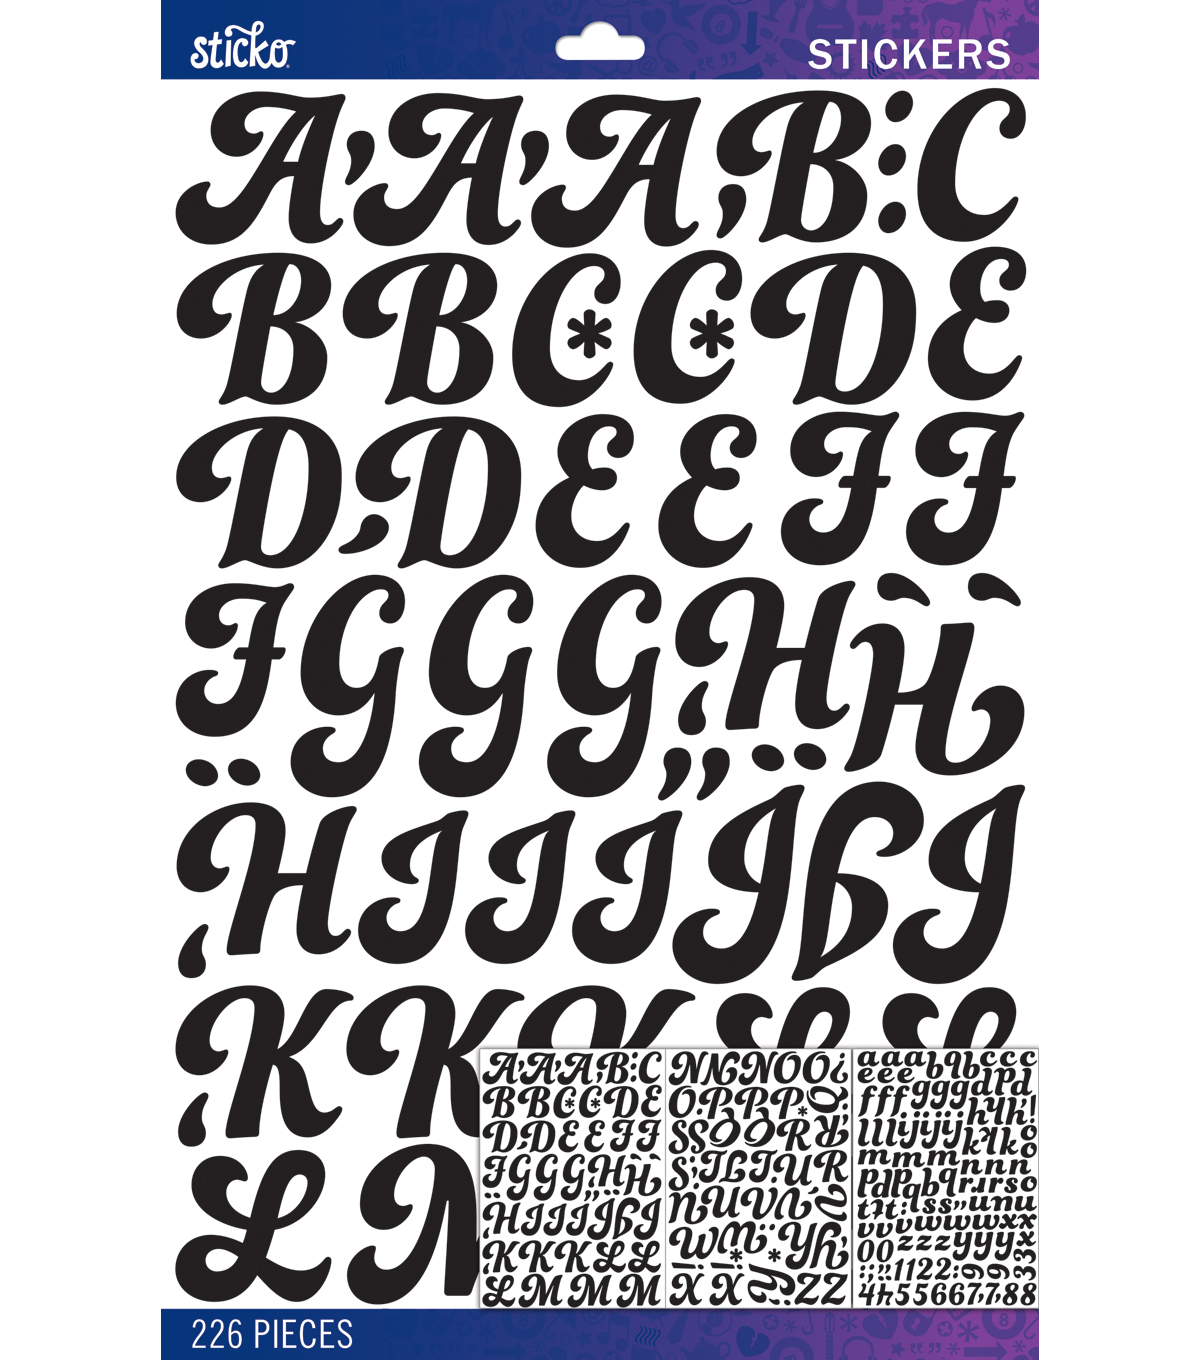 Sticko - Black Funkydori Large Alphabet Stickers